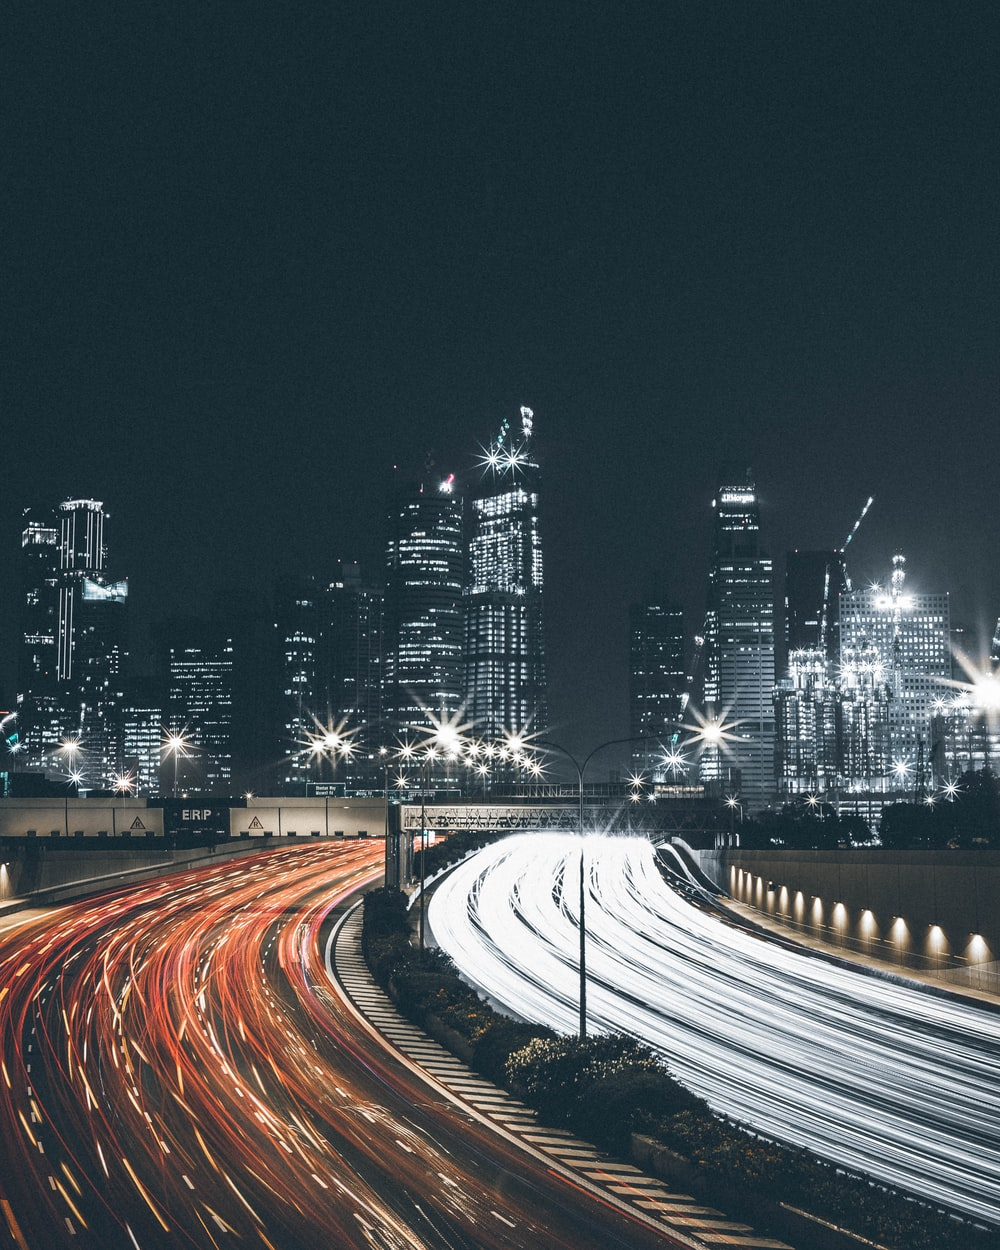 timelapse photo of the road with cars